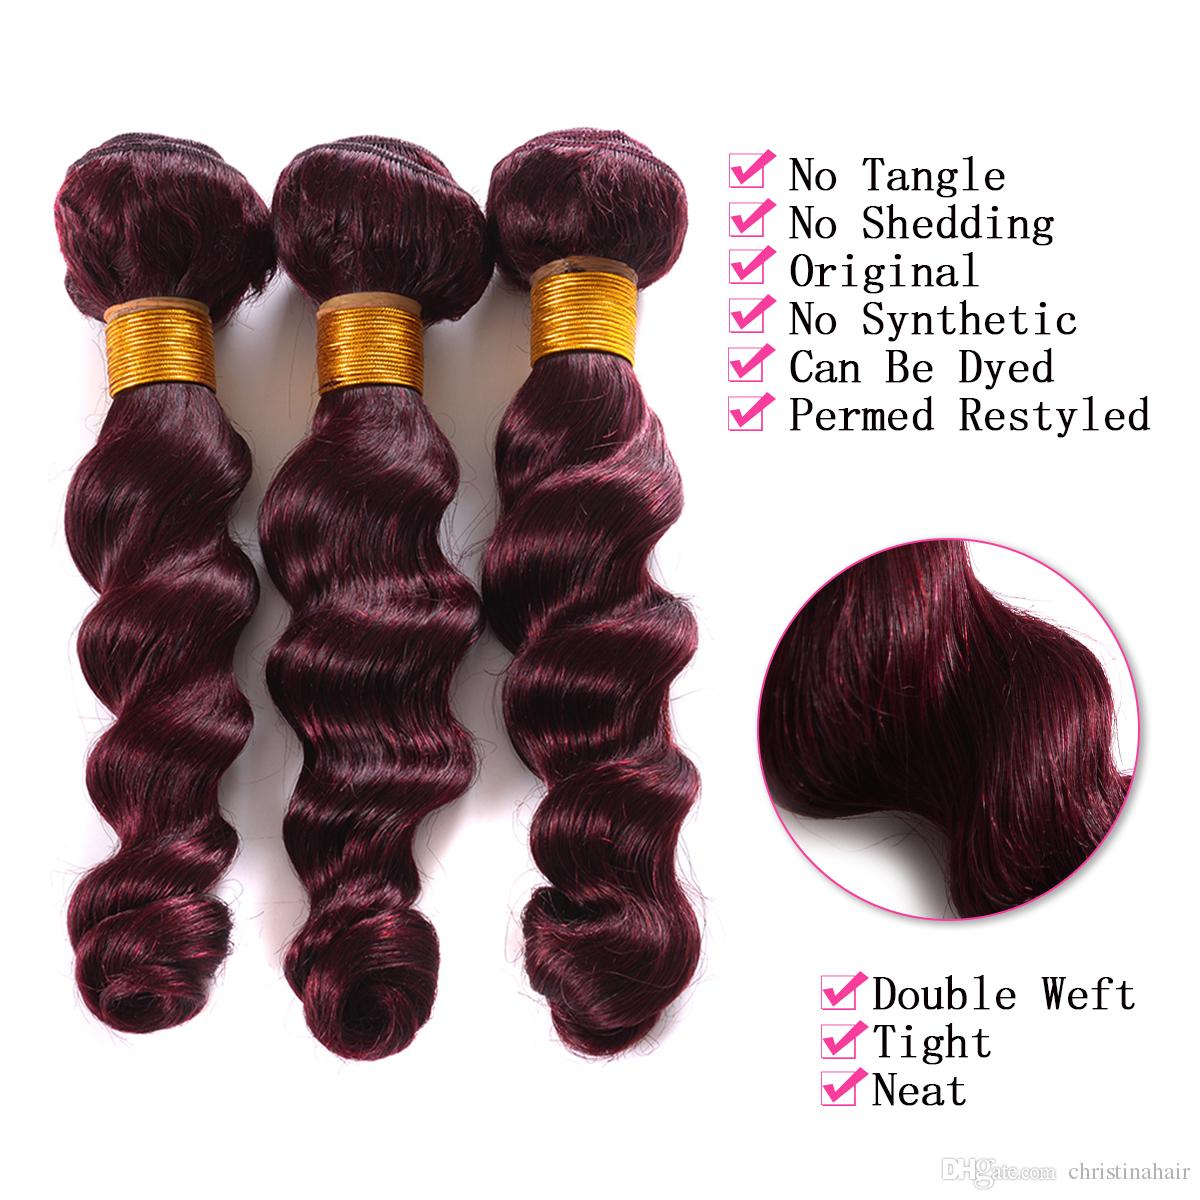 Cheapest New Mink 99j Peruvian Loose Wave Hair With 4x4 Closure 3 Bundles with Lace Closure Wine Red 99j Virgin Human Hair Weave